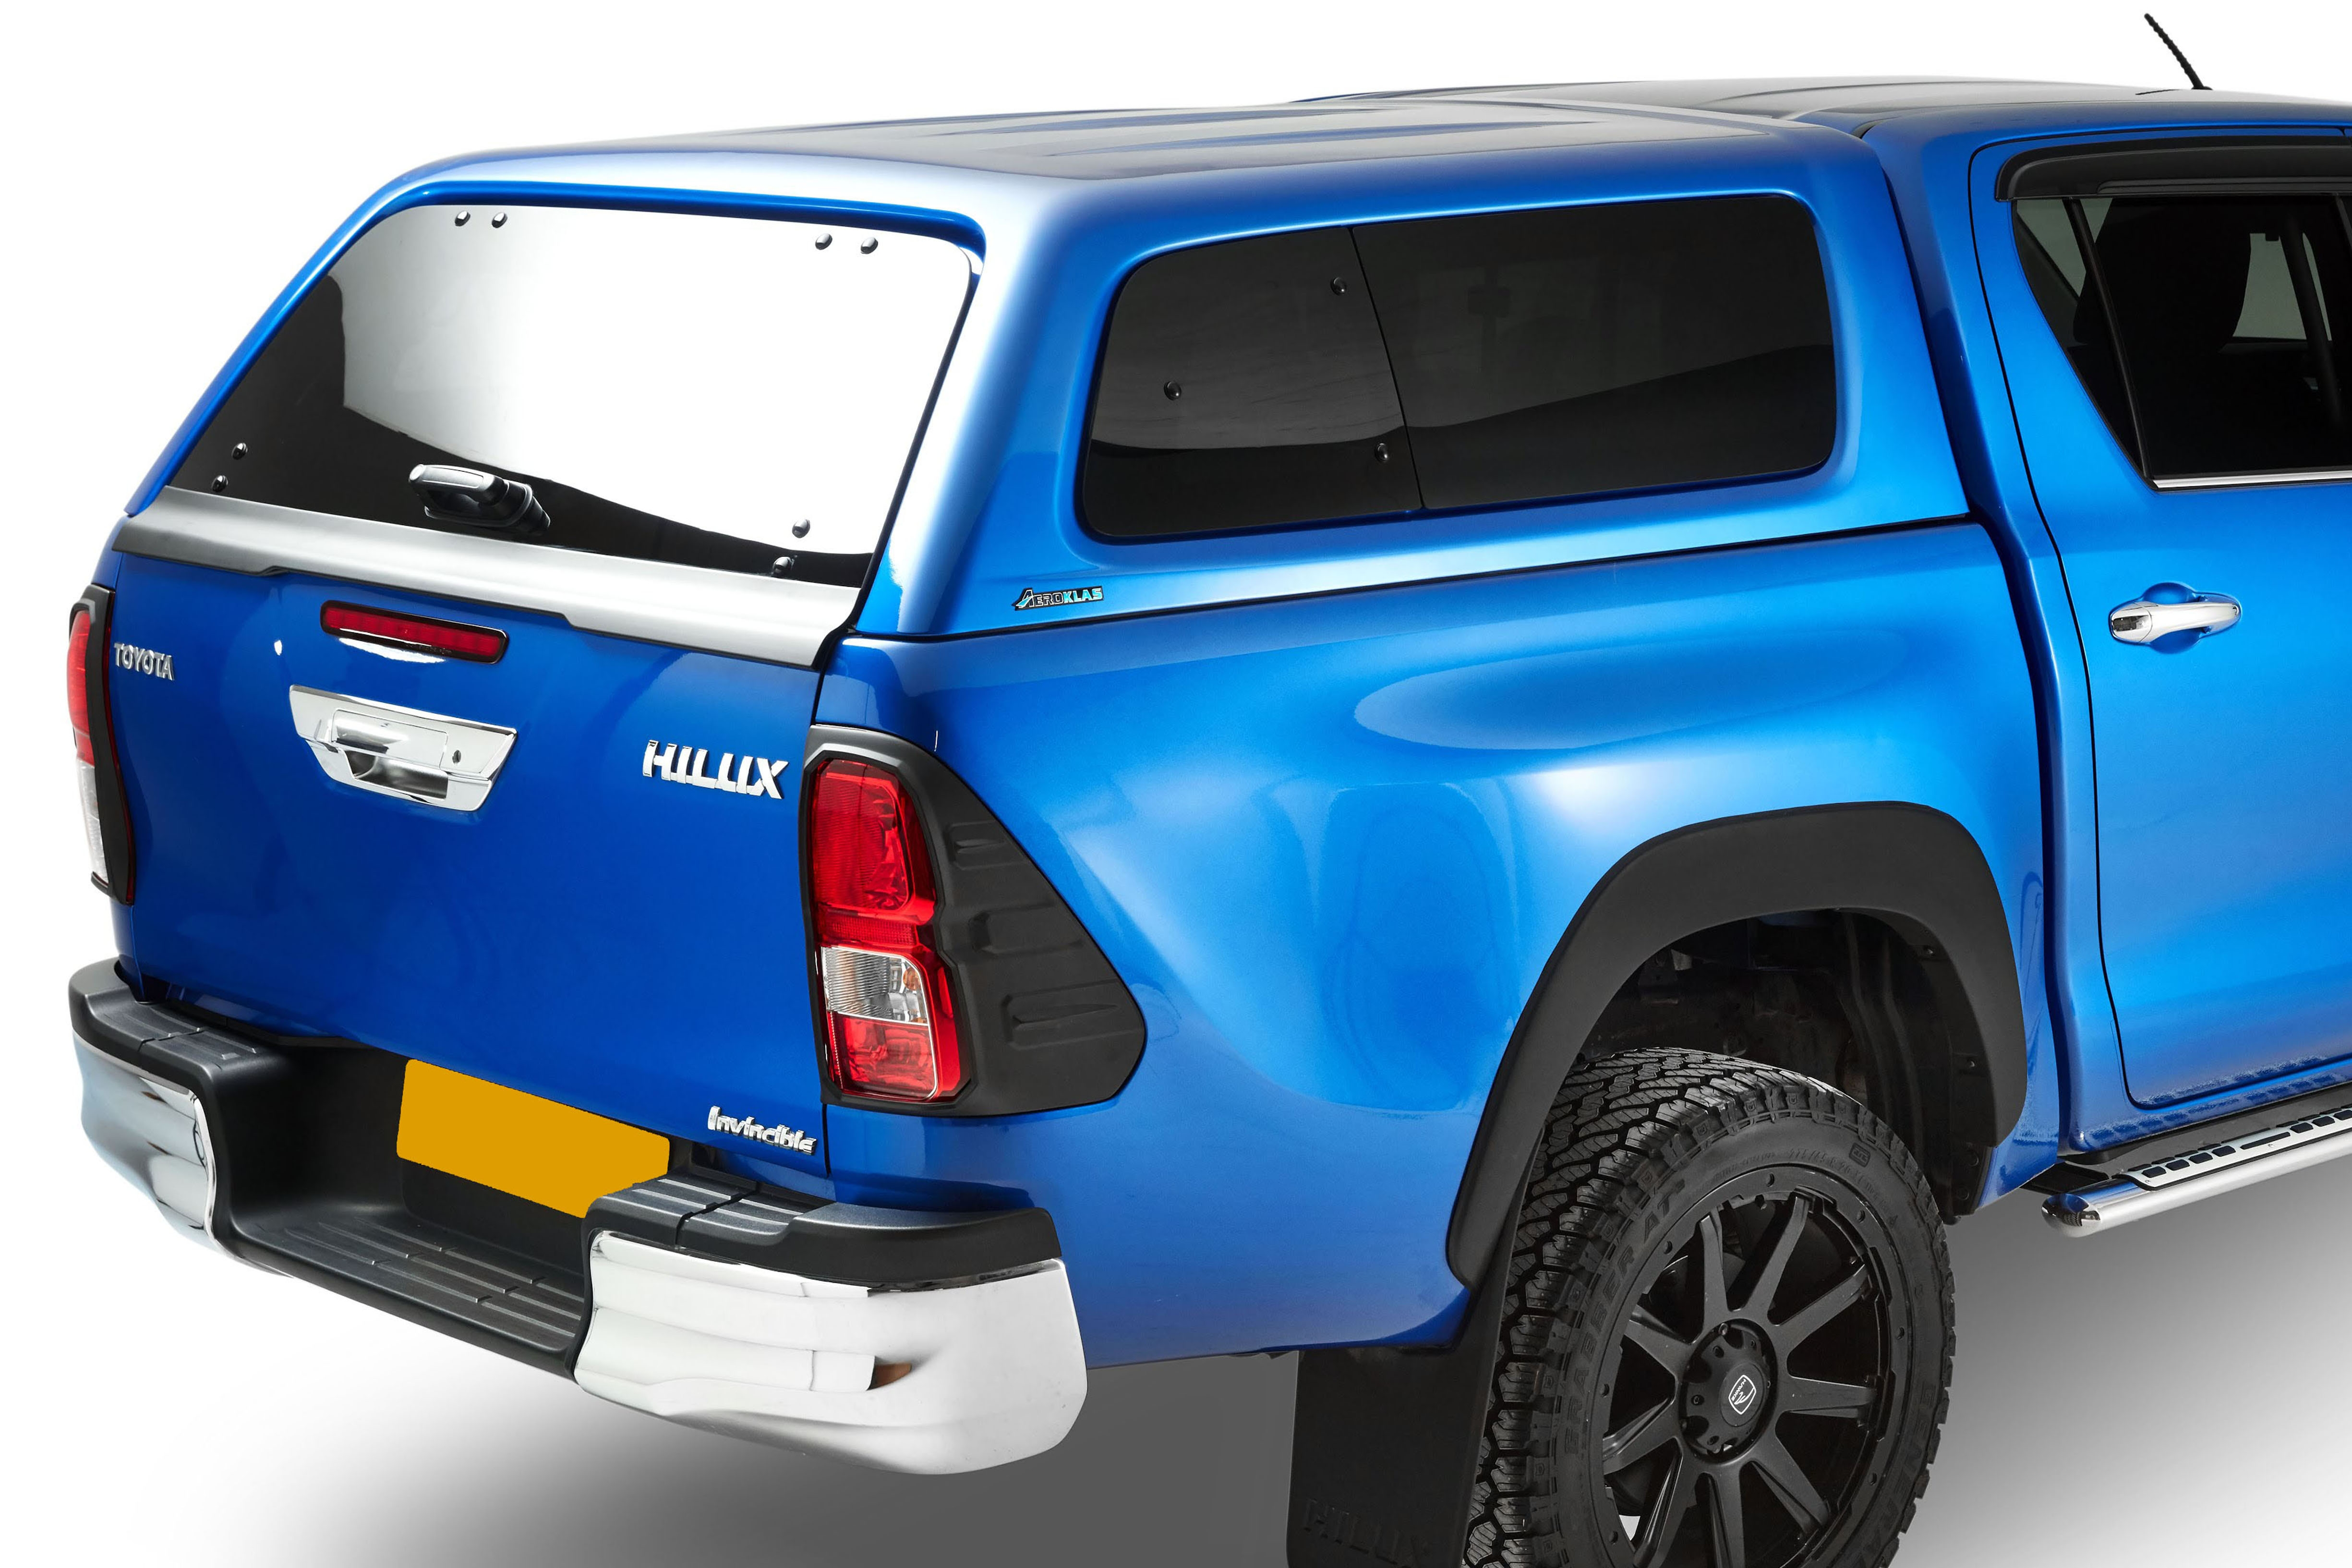 Toyota Hilux Aeroklas Pop Out Windows Truck Top - 4x4